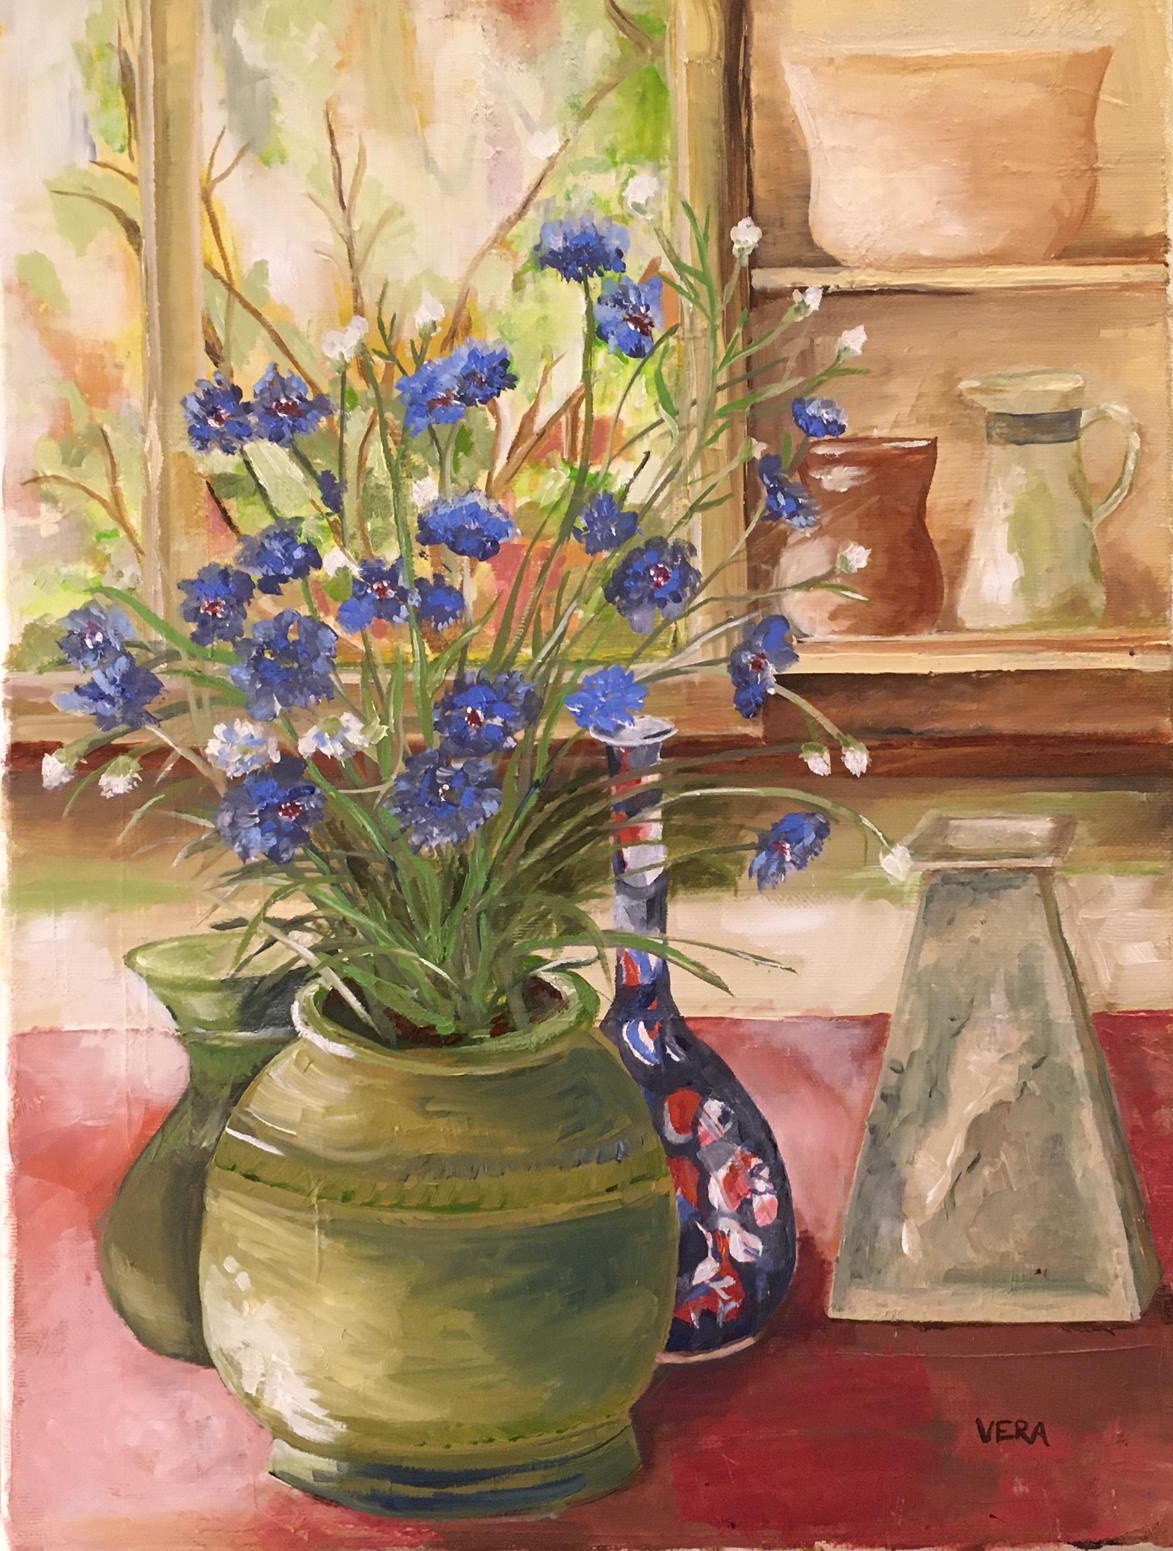 Cornflowers; Homage to Margaret Olley